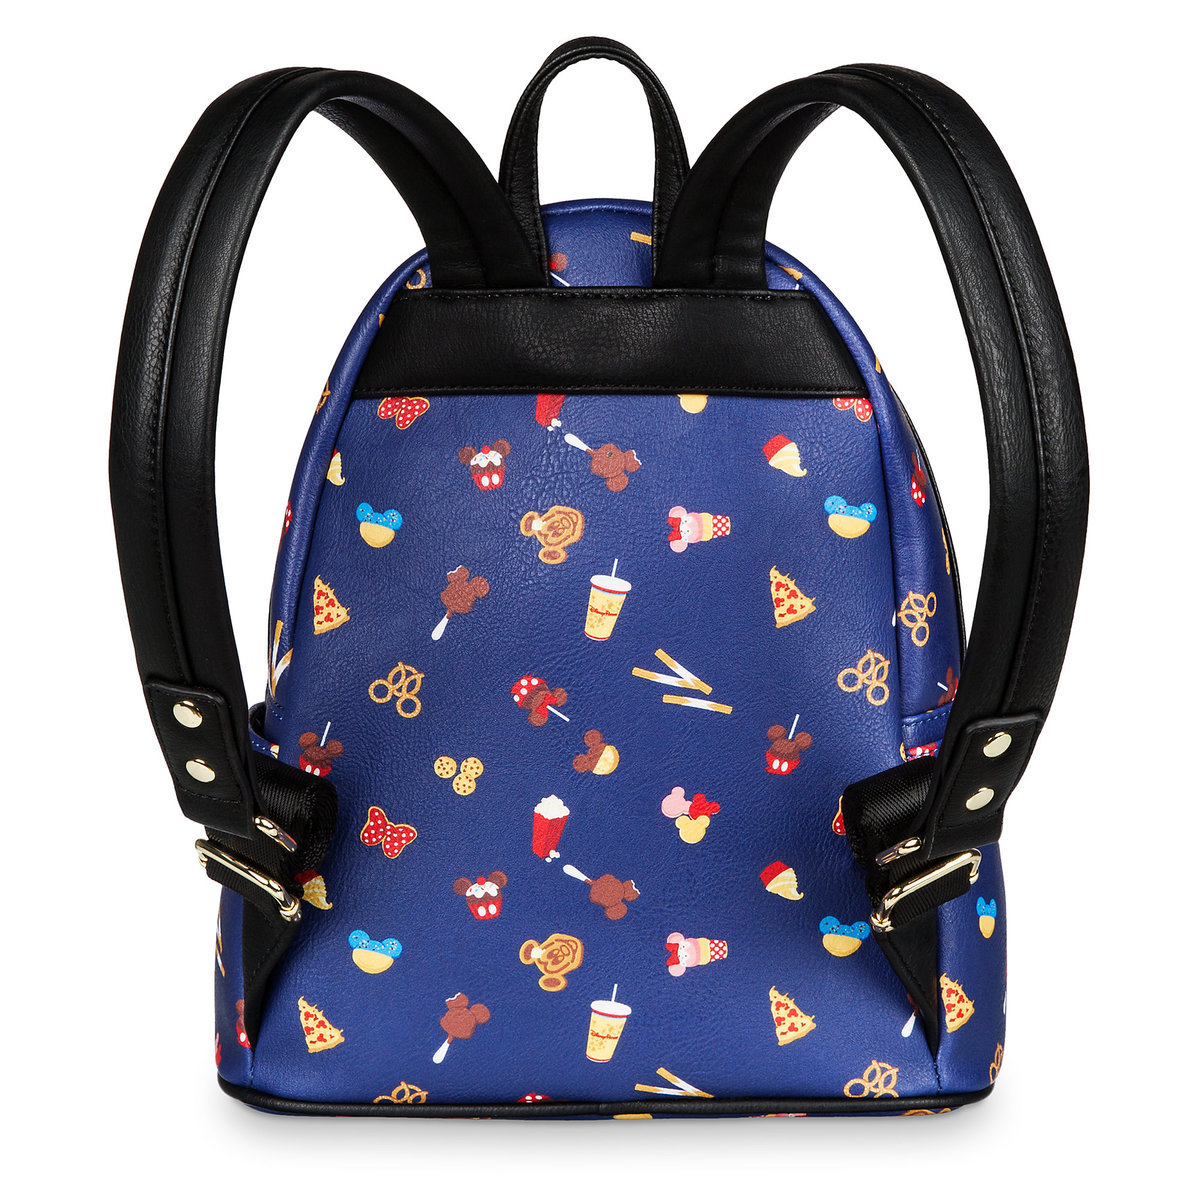 e55aef284c Product Image of Disney Parks Food Icons Mini Backpack by Loungefly   2